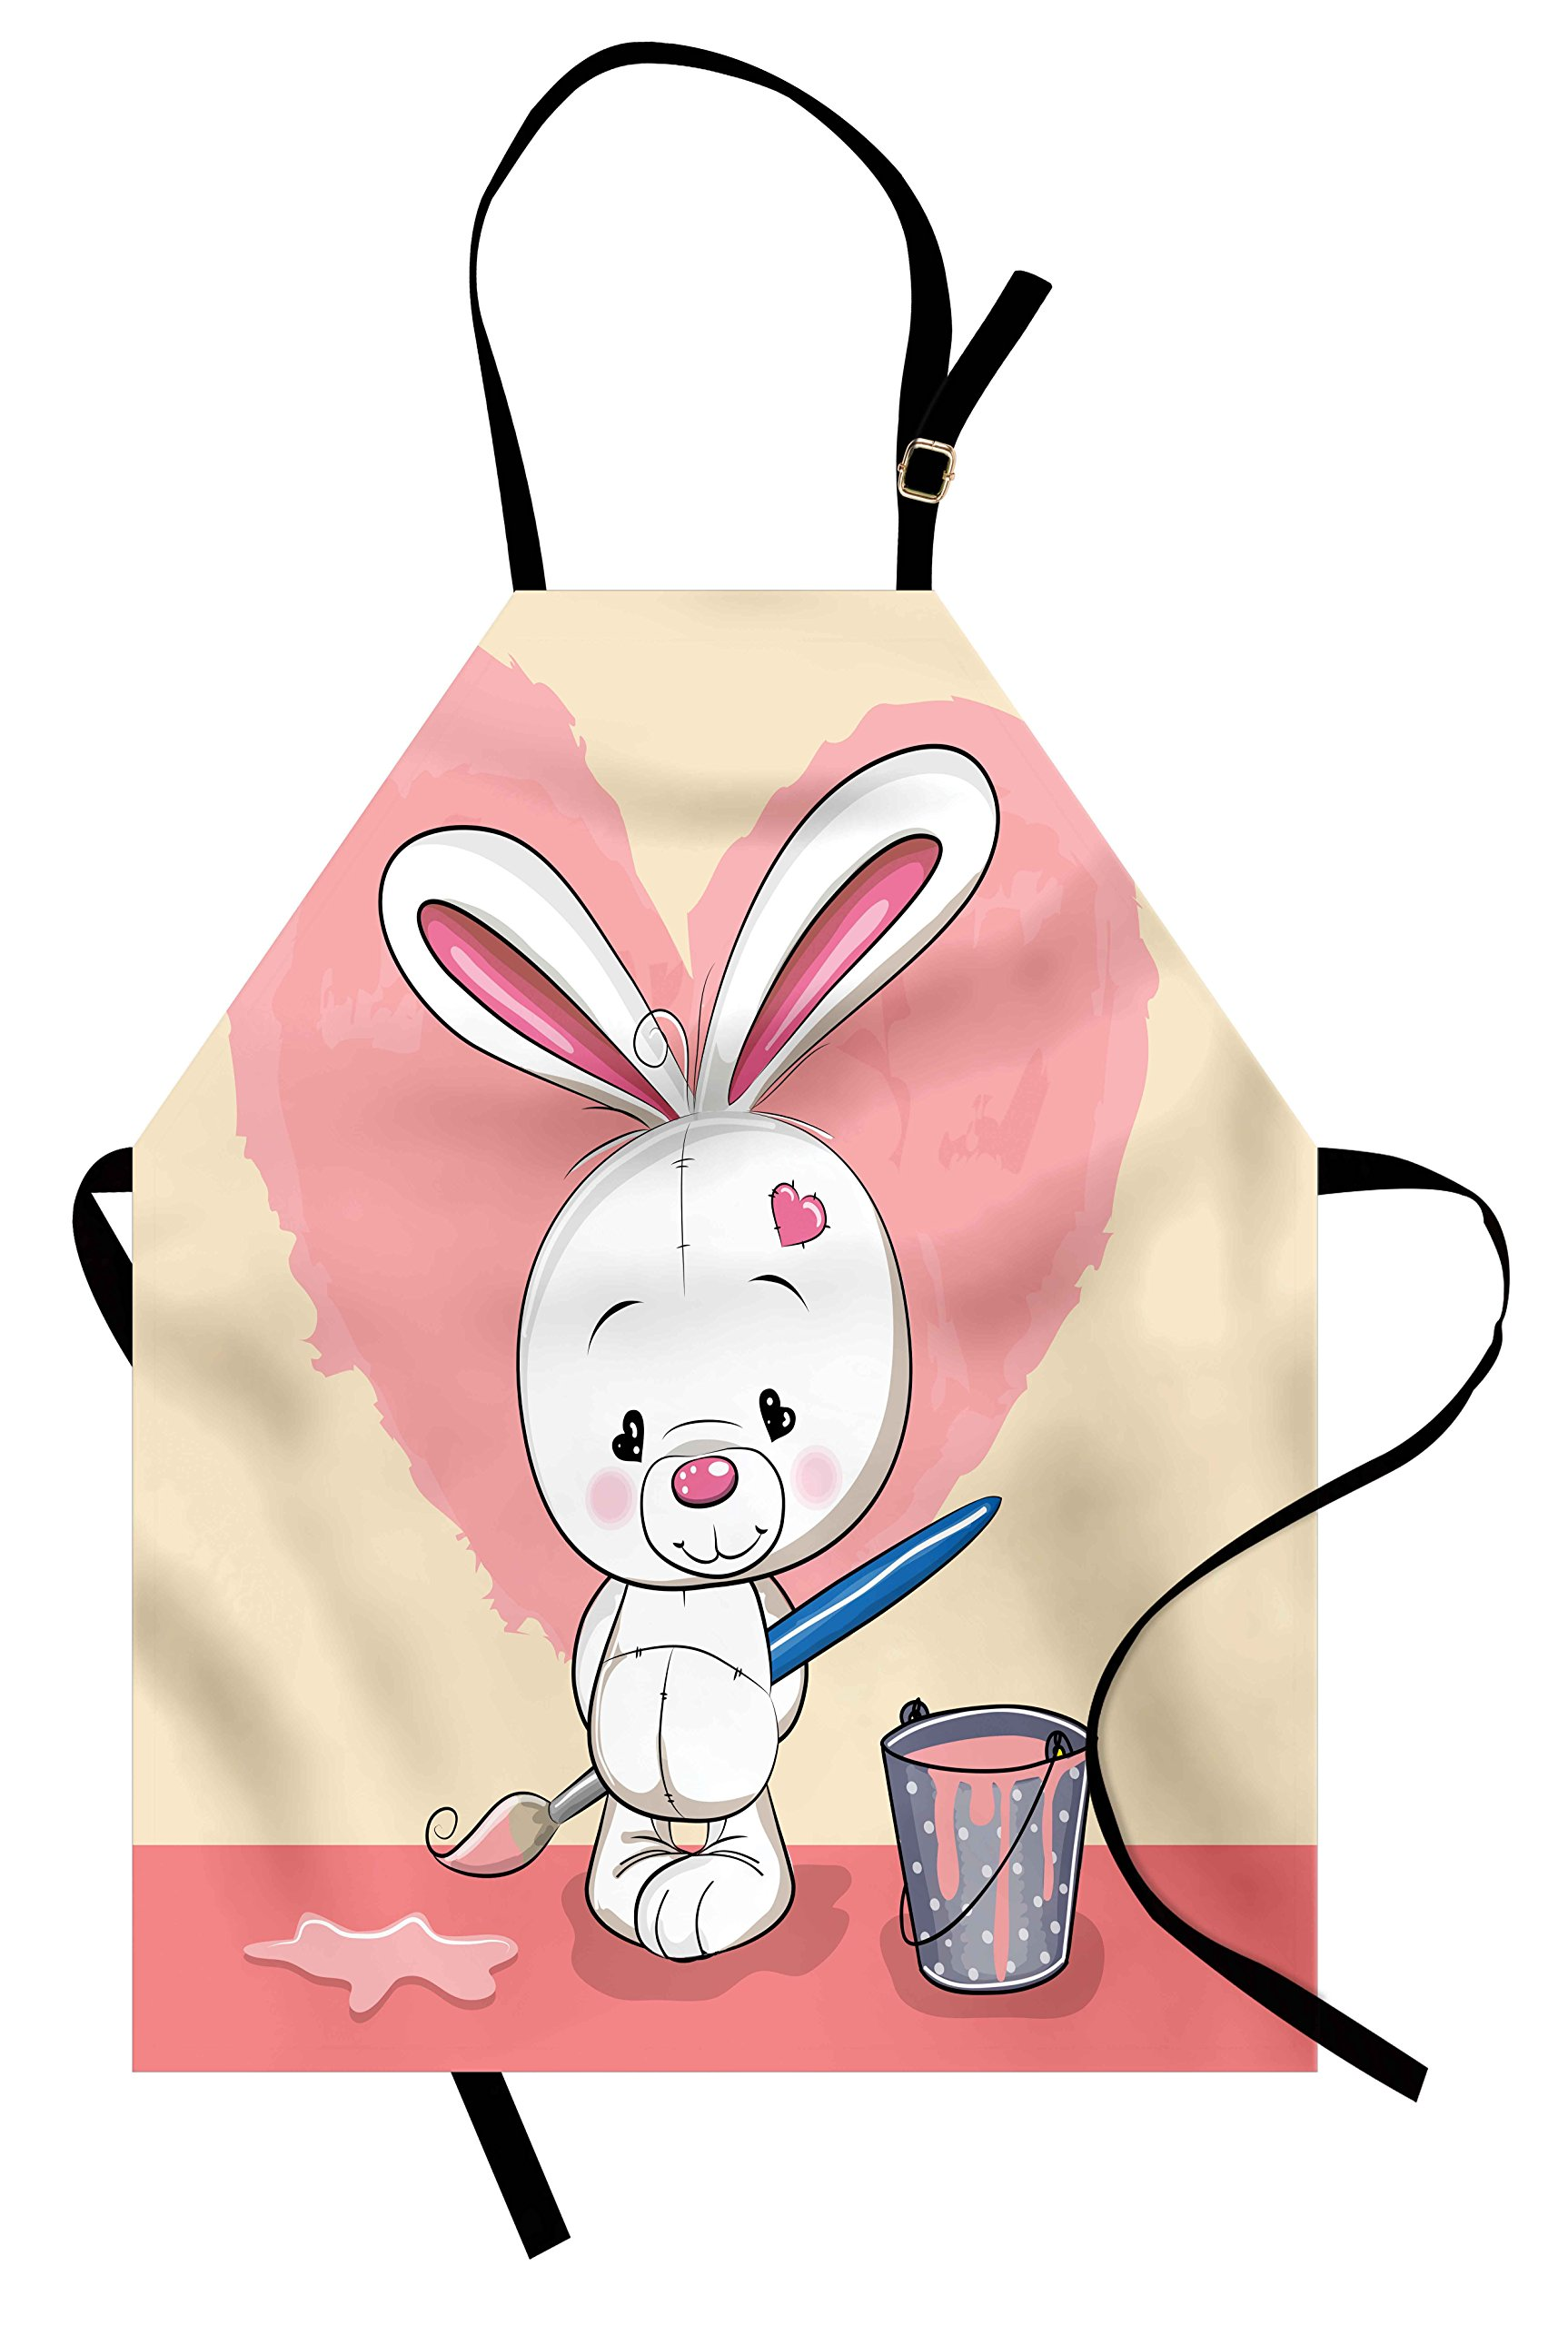 Lunarable Rabbit Apron, Cute and Shy Bunny Painting a Pink Heart on the Wall Heart Shaped Eyes and Ears, Unisex Kitchen Bib Apron with Adjustable Neck for Cooking Baking Gardening, Multicolor